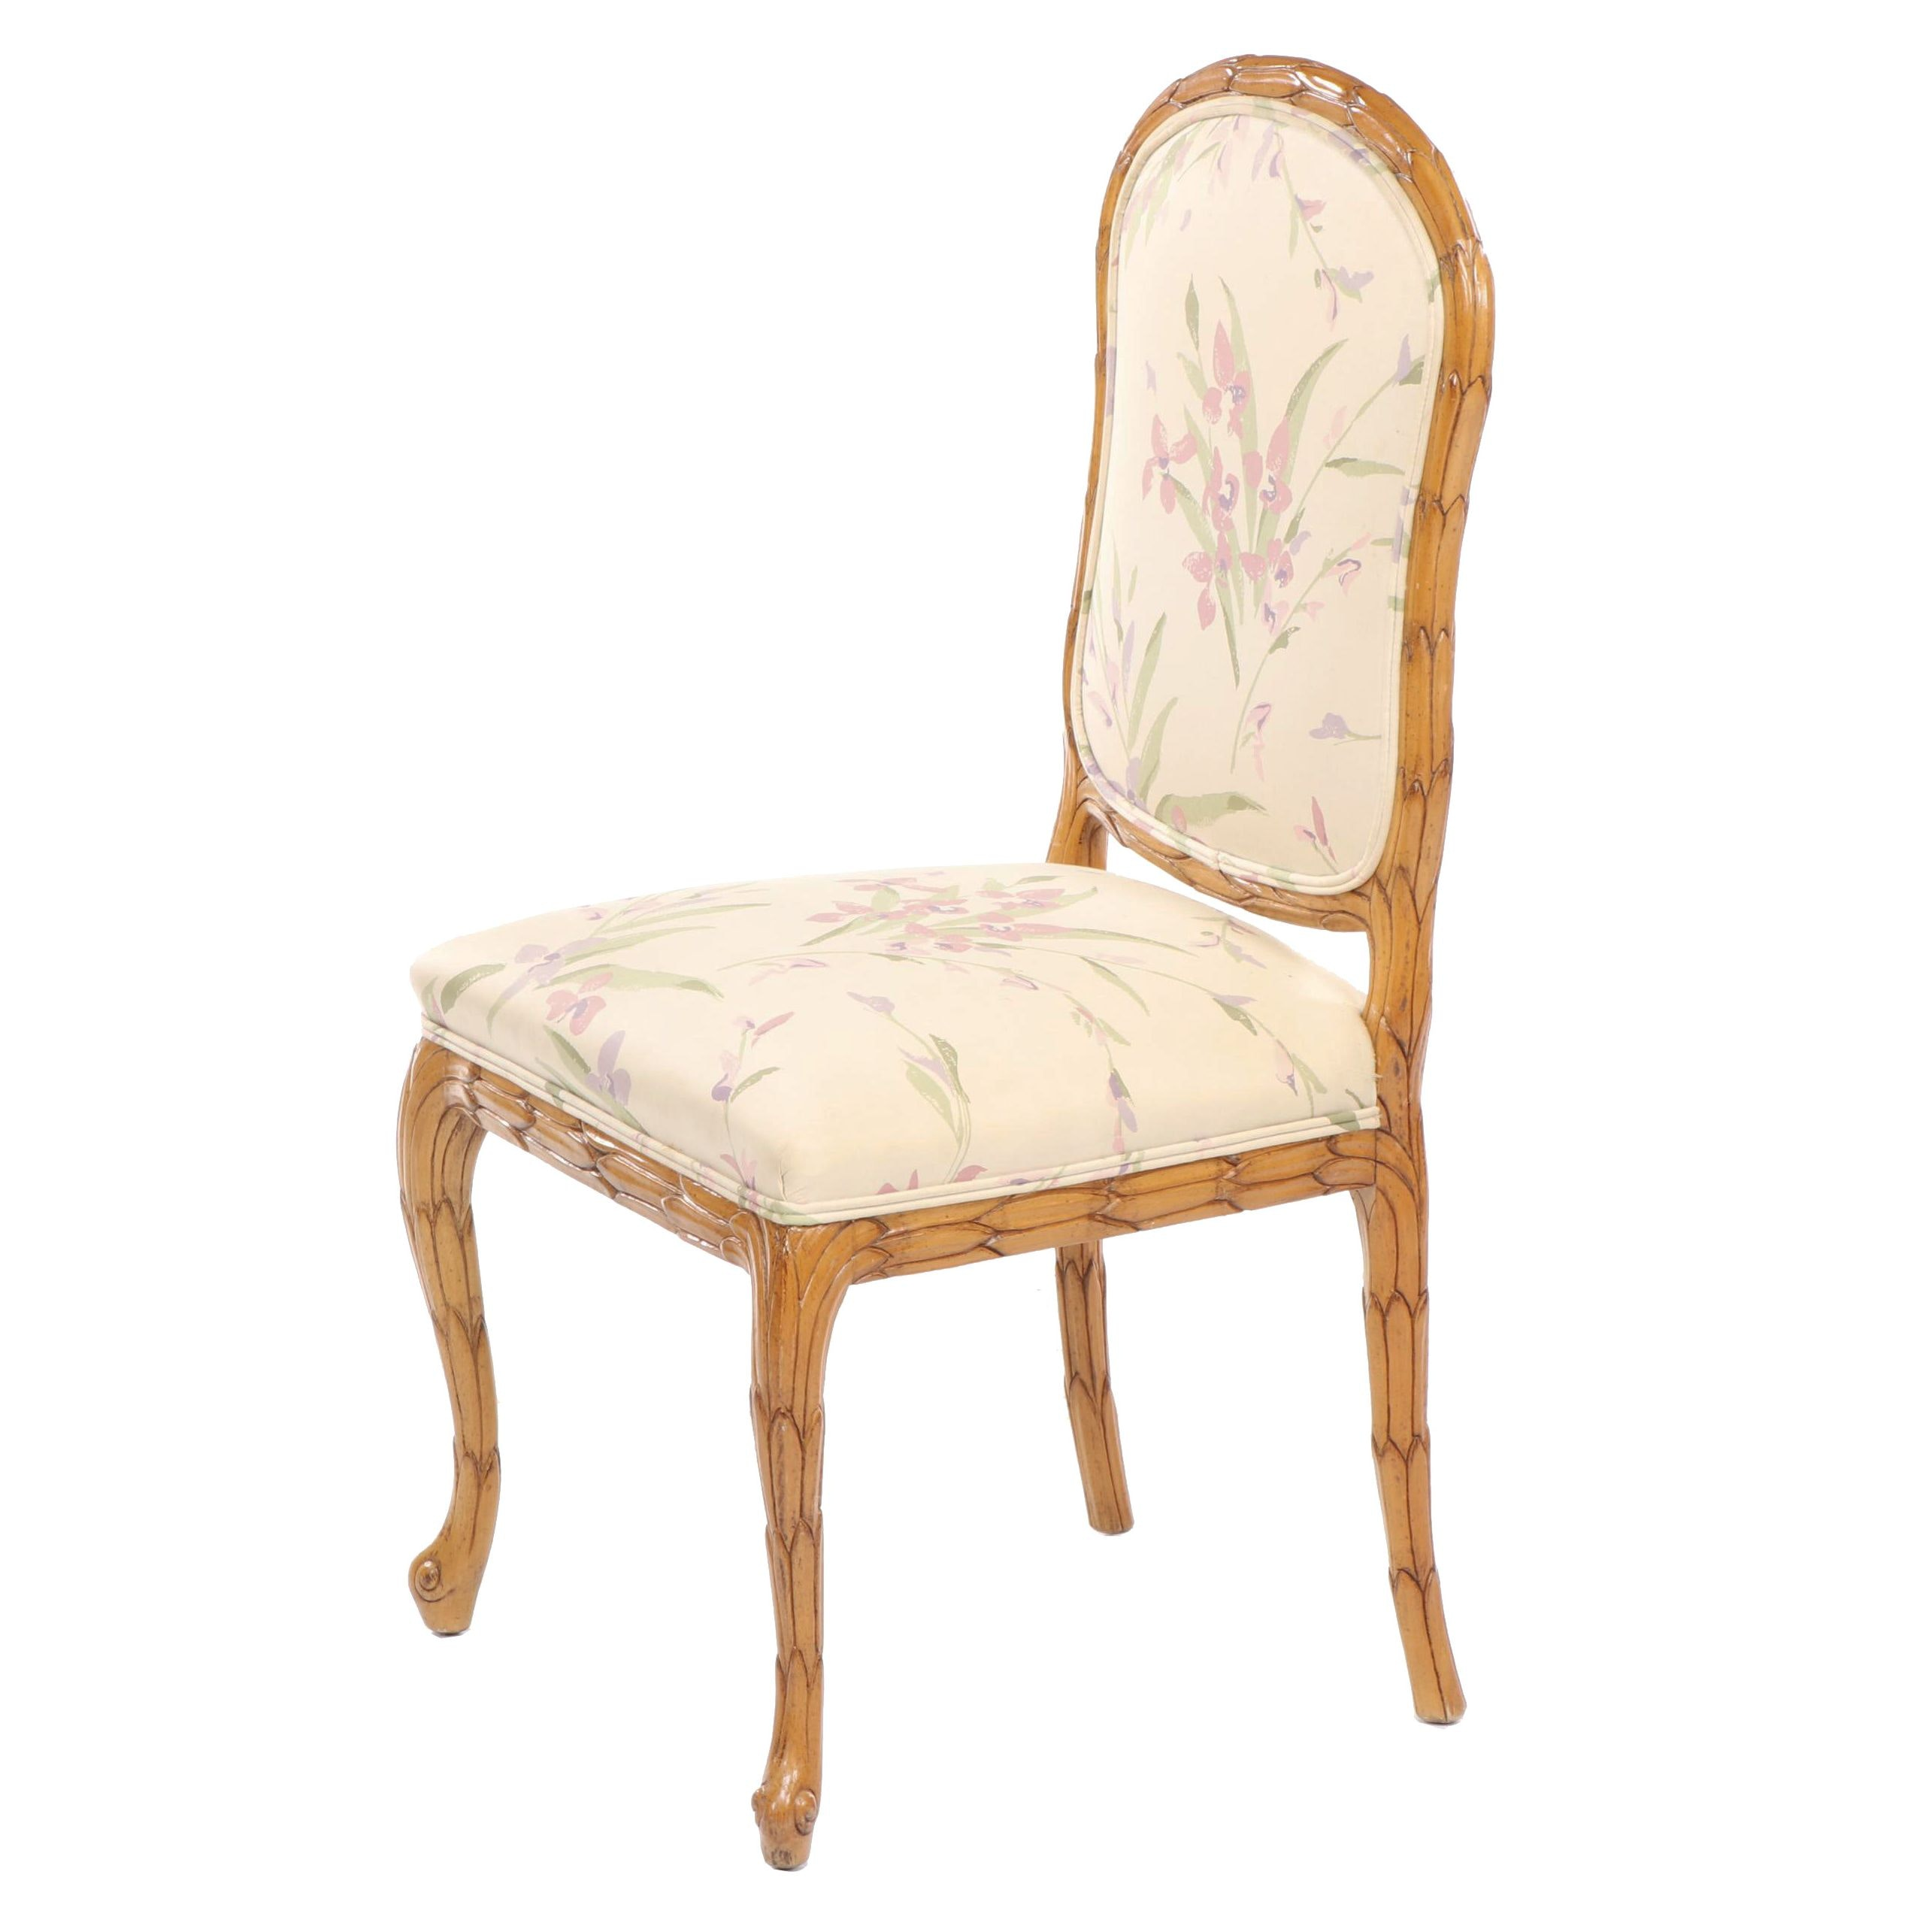 Century Chair Company Floral Upholstered French Style Carved Wooden Chair